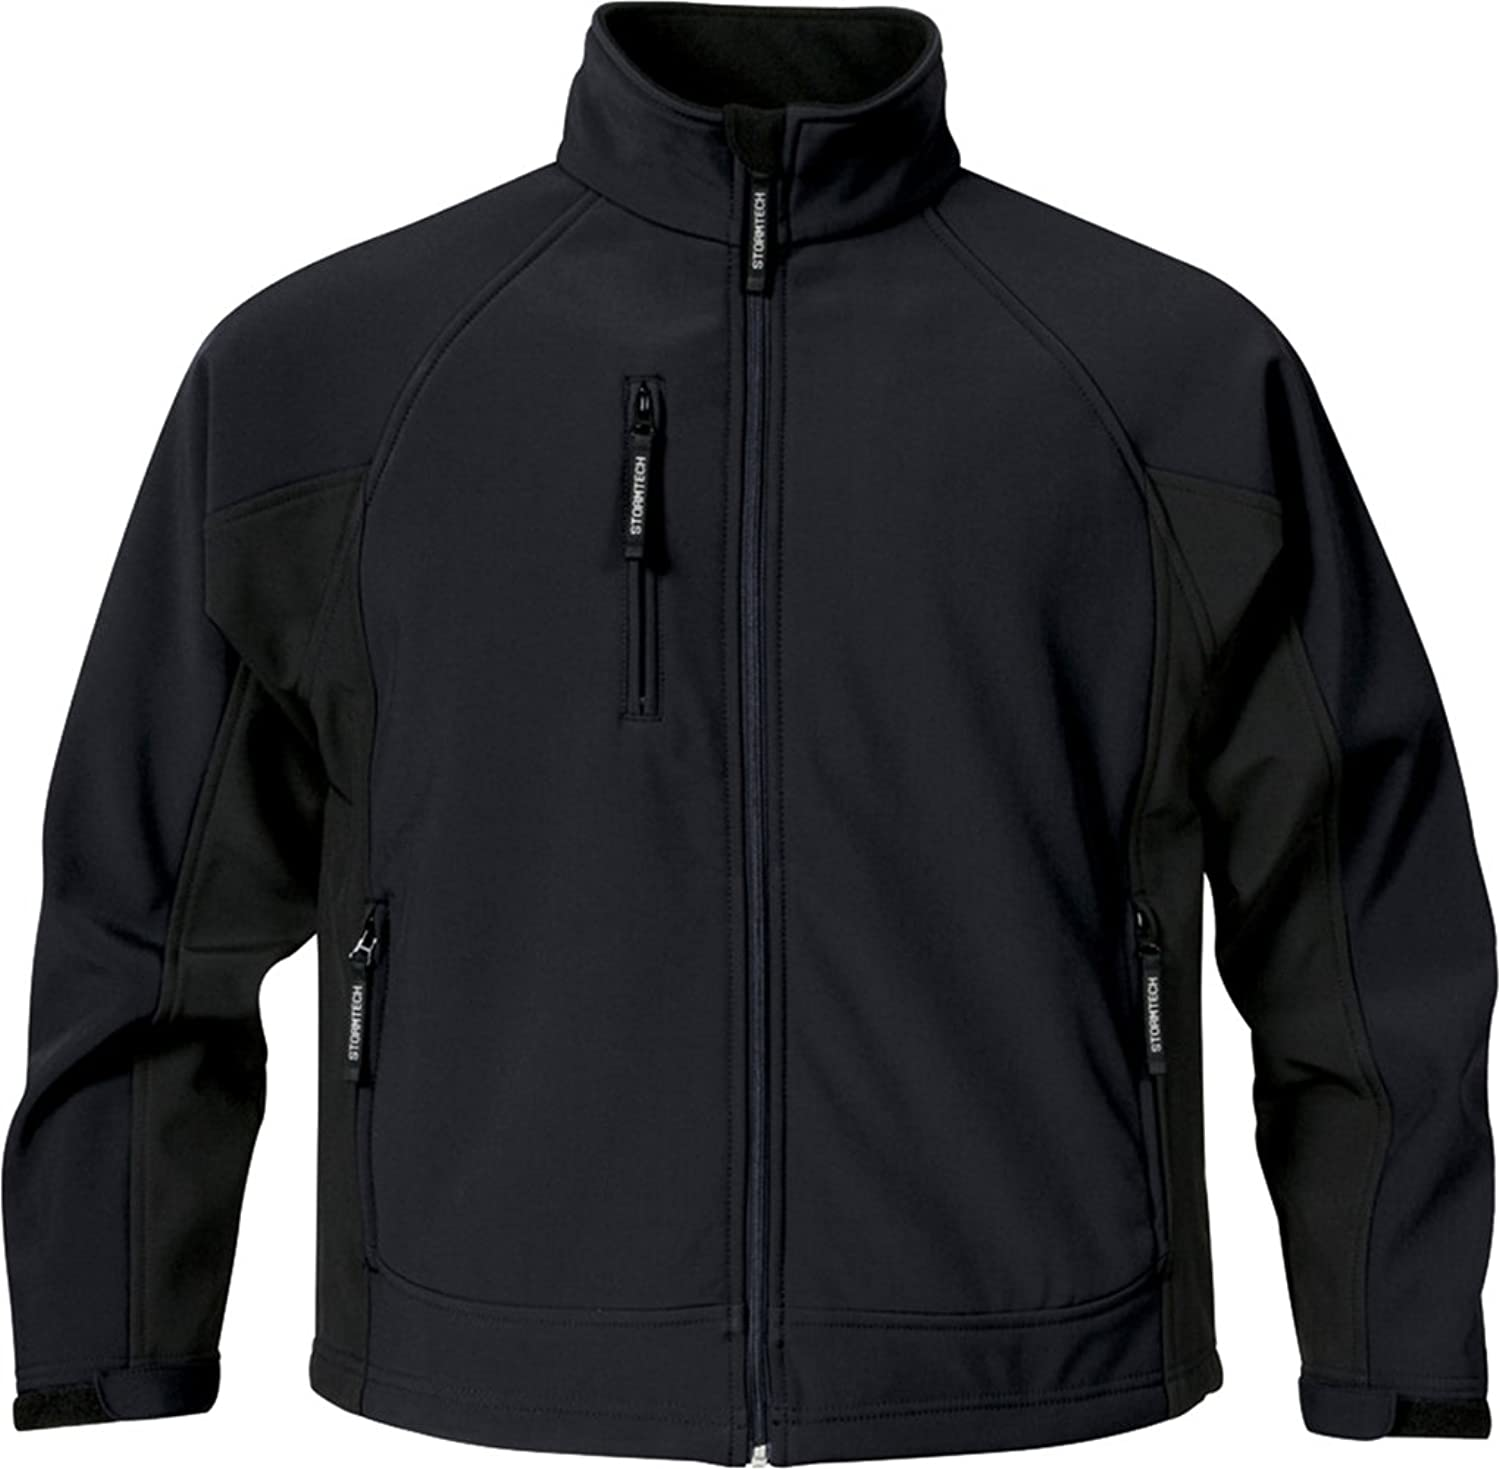 New Stormtech Mens Bonded Jacket Stand-Up Collar Mid Length Gents Winterwear